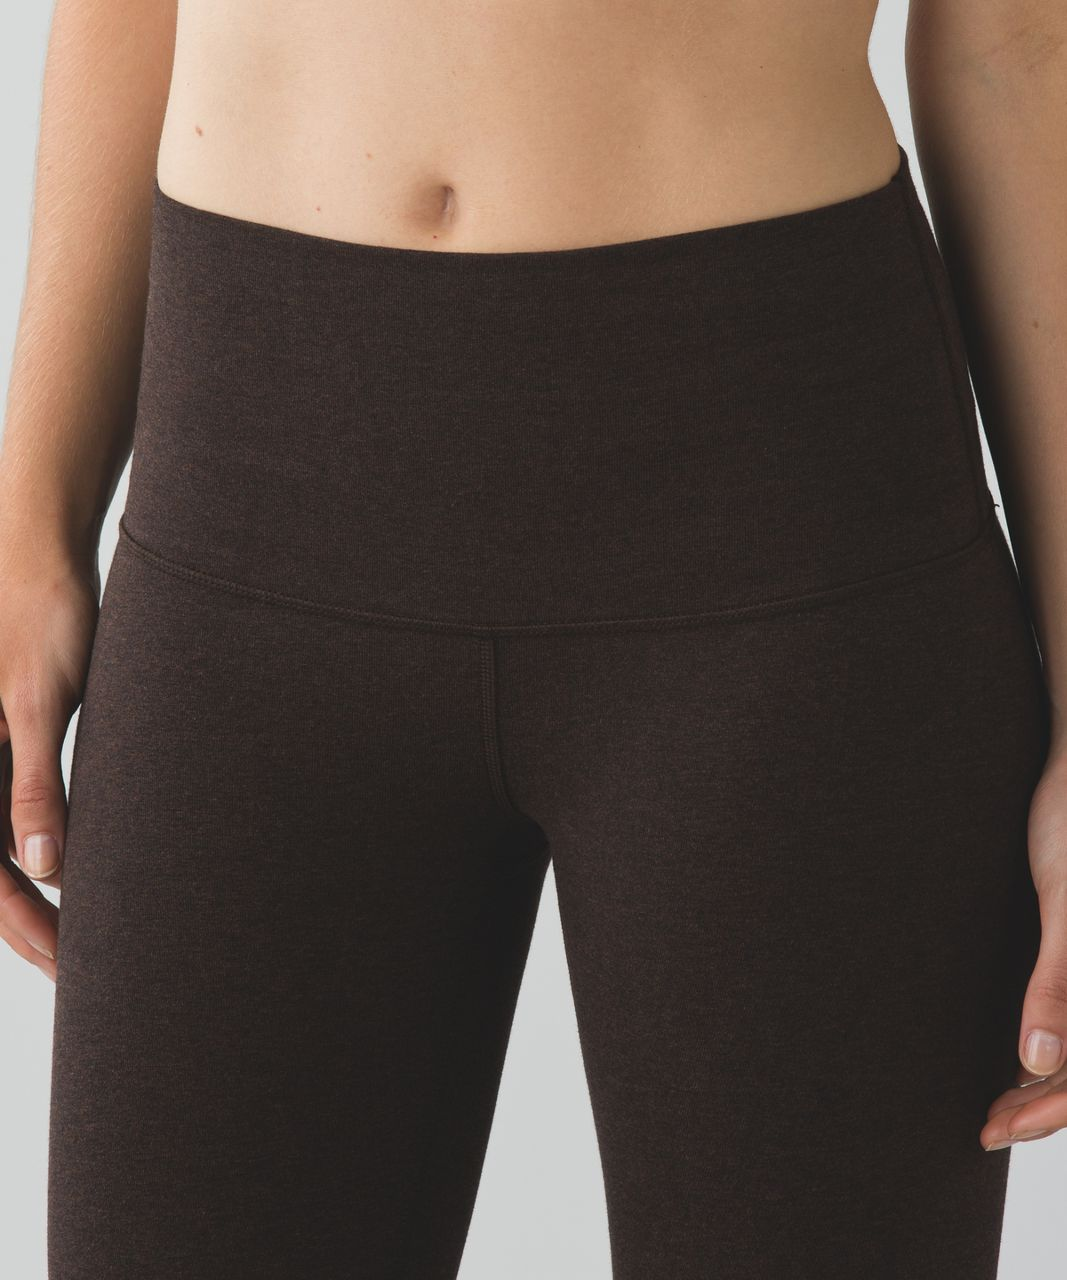 Lululemon Wunder Under Pant (Hi-Rise) *Cotton - Heathered Espresso